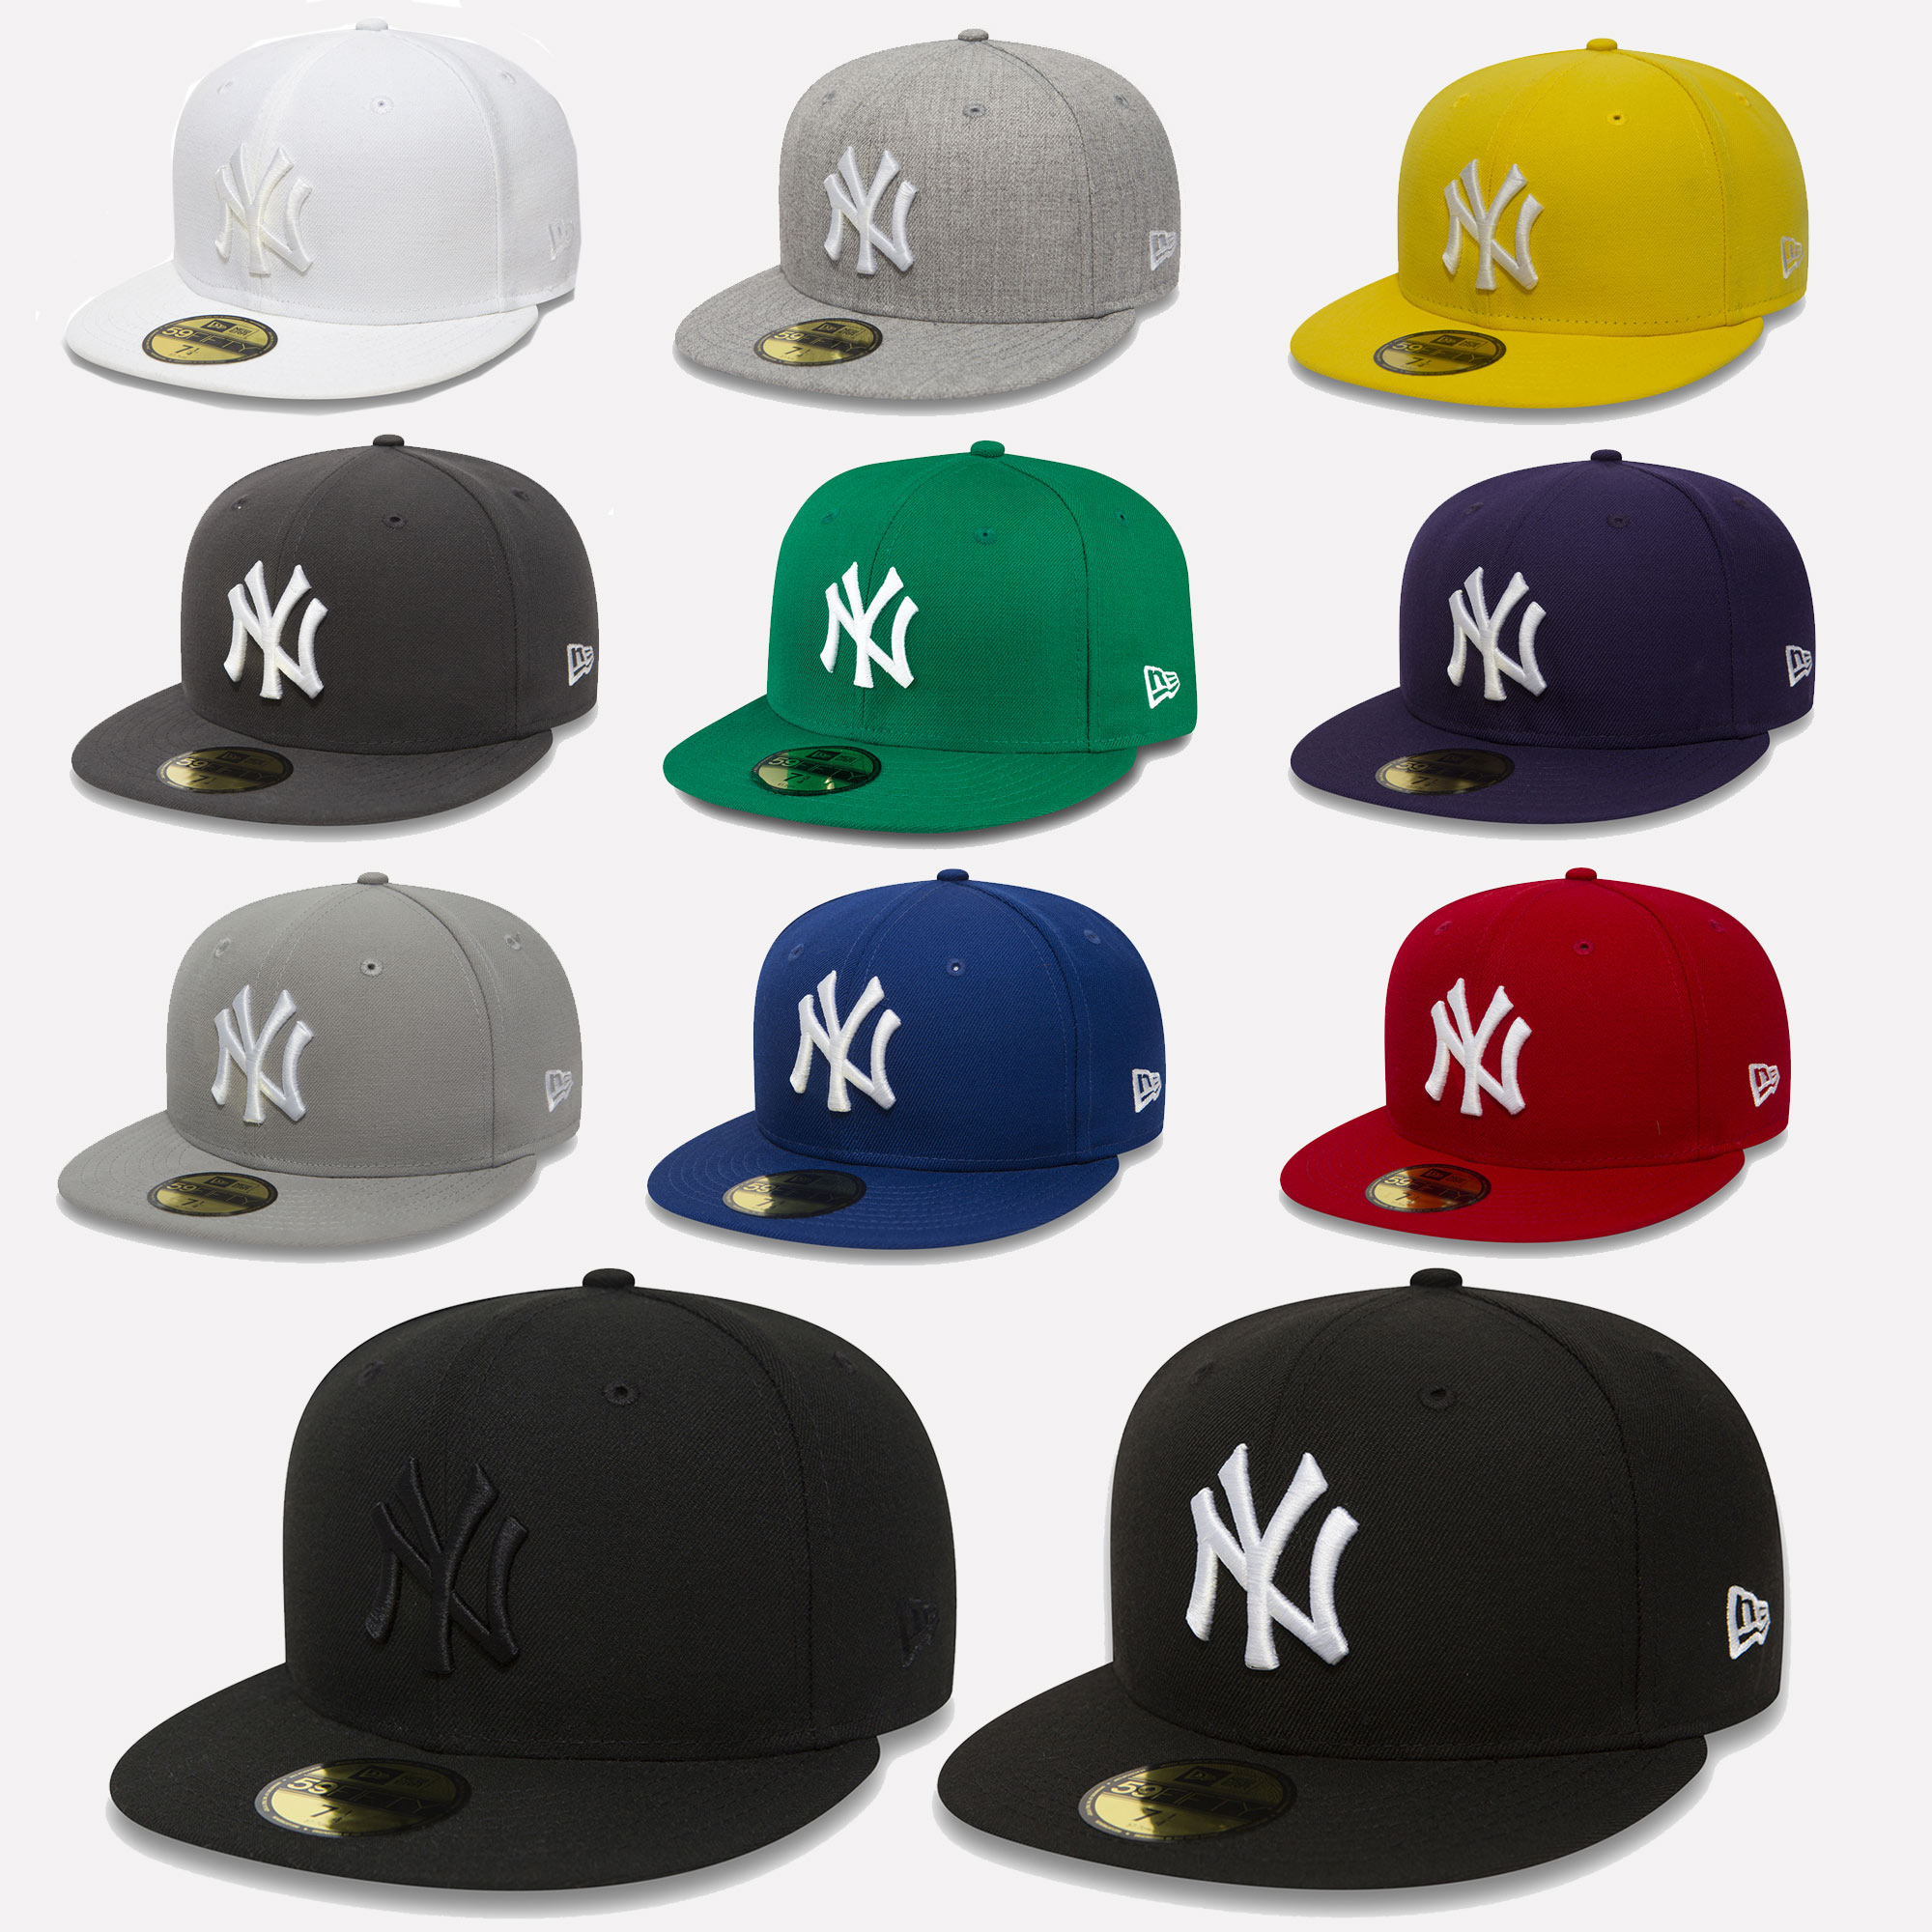 New Era Cap 59Fifty Fitted New York Yankees MLB Baseball Baseball ... 81b409c3304